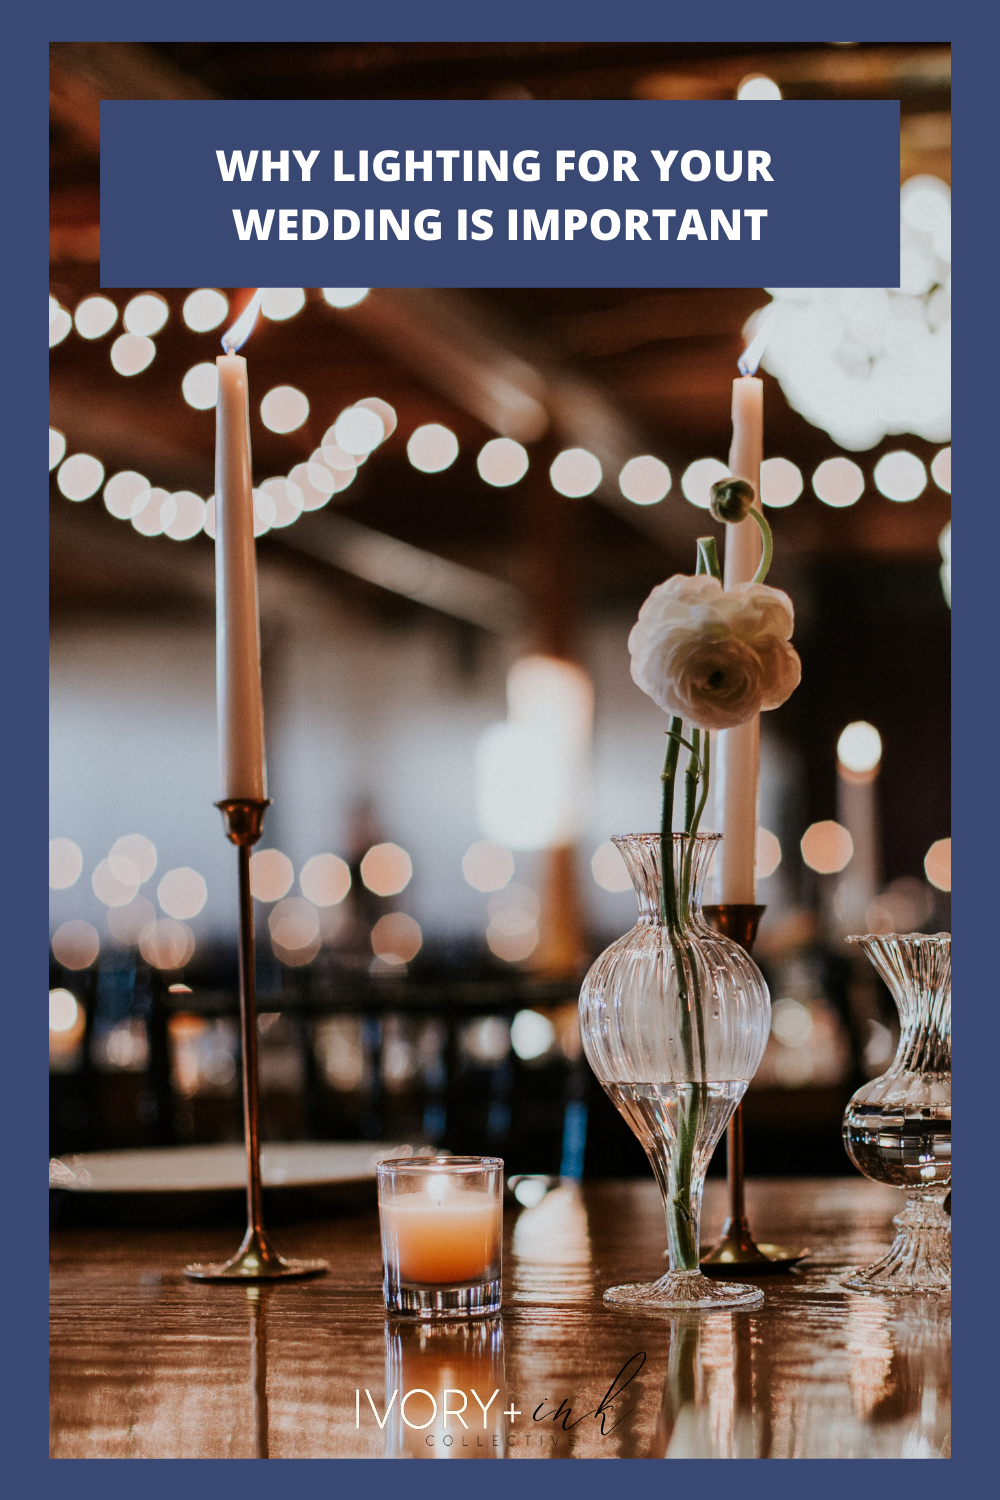 WHY LIGHTING FOR YOUR WEDDING IS IMPORTANT